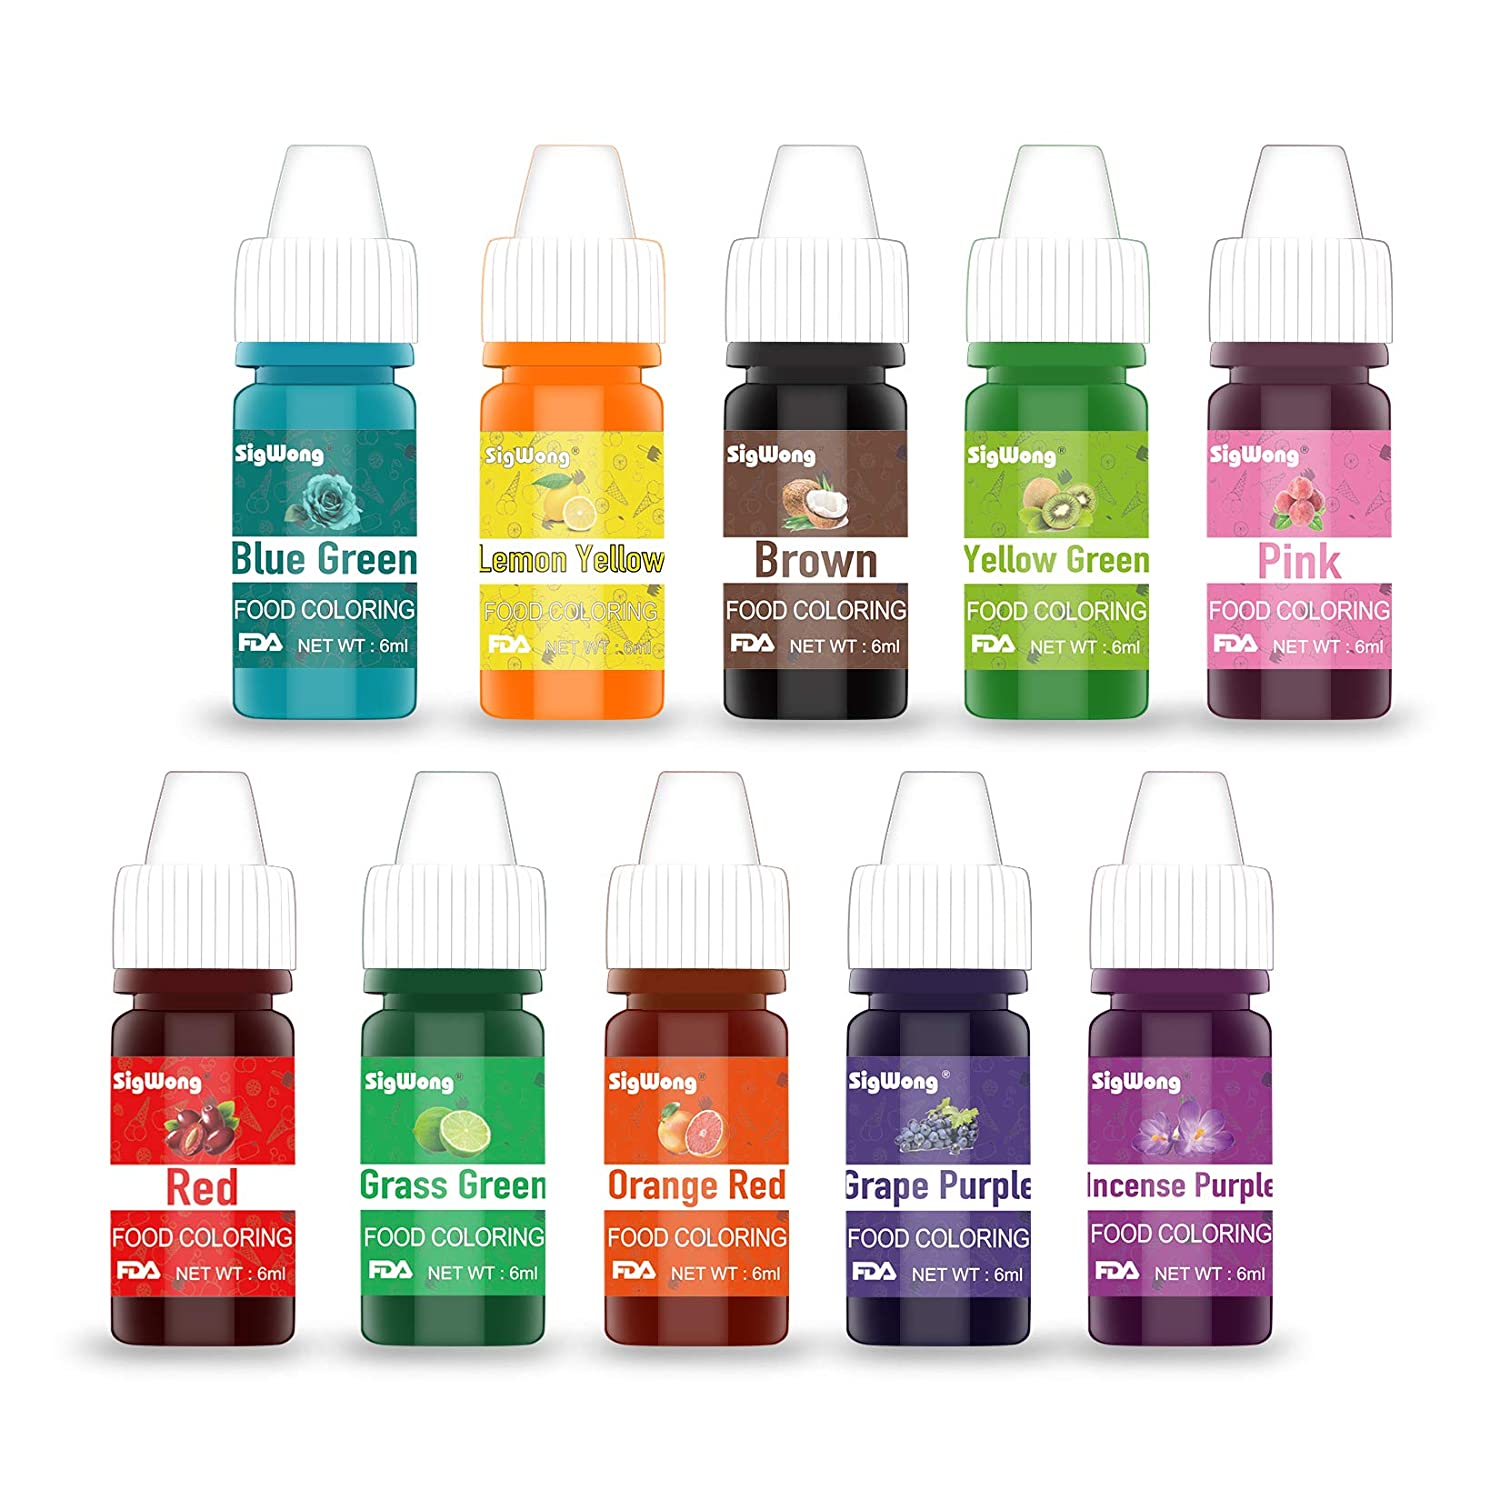 Food Coloring - Concentrated Liquid Food Colouring Set - neon Liquid Food Color Dye for for Baking, Decorating, Icing, Cooking, Slime Making Kit and DIY Crafts, 10 Color × 6ml Bottles(.25 fl.oz.)